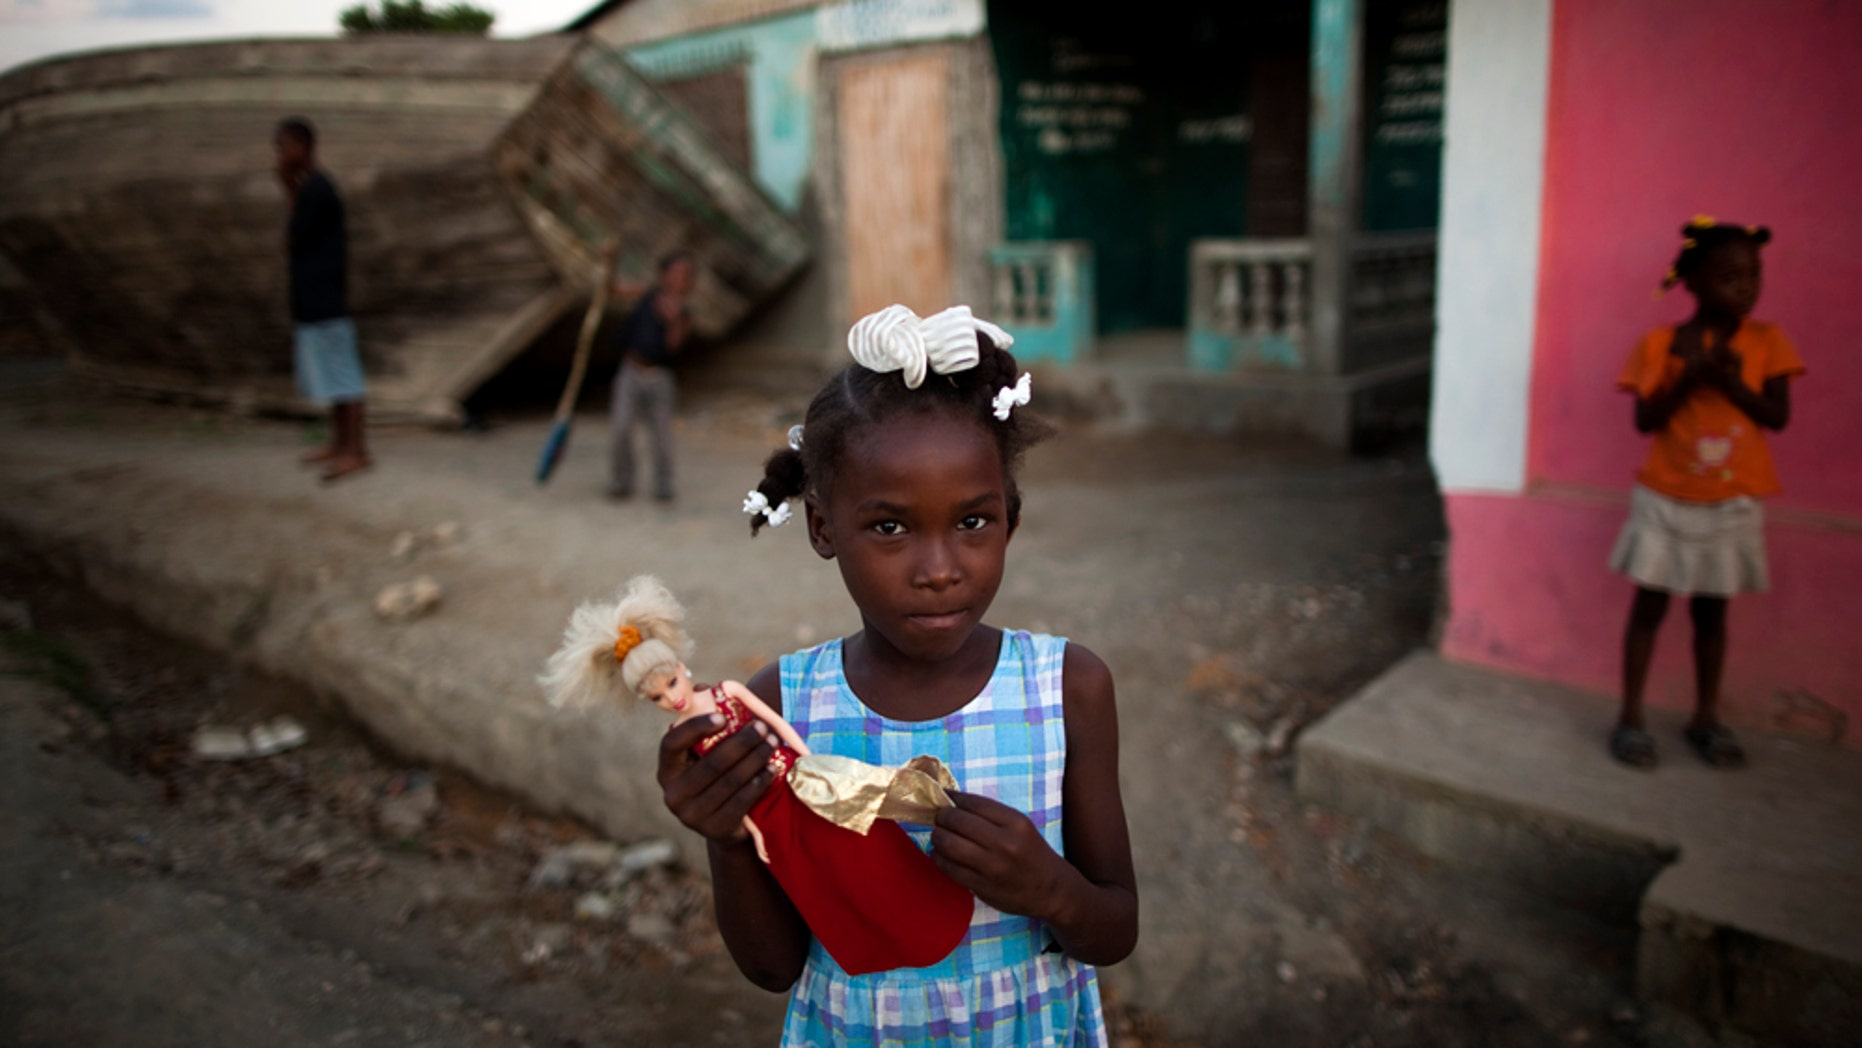 Claudine holds a Barbie doll next to the port in Port-du-Paix, Haiti, Thursday, Jan. 27, 2011. (AP Photo/Rodrigo Abd)